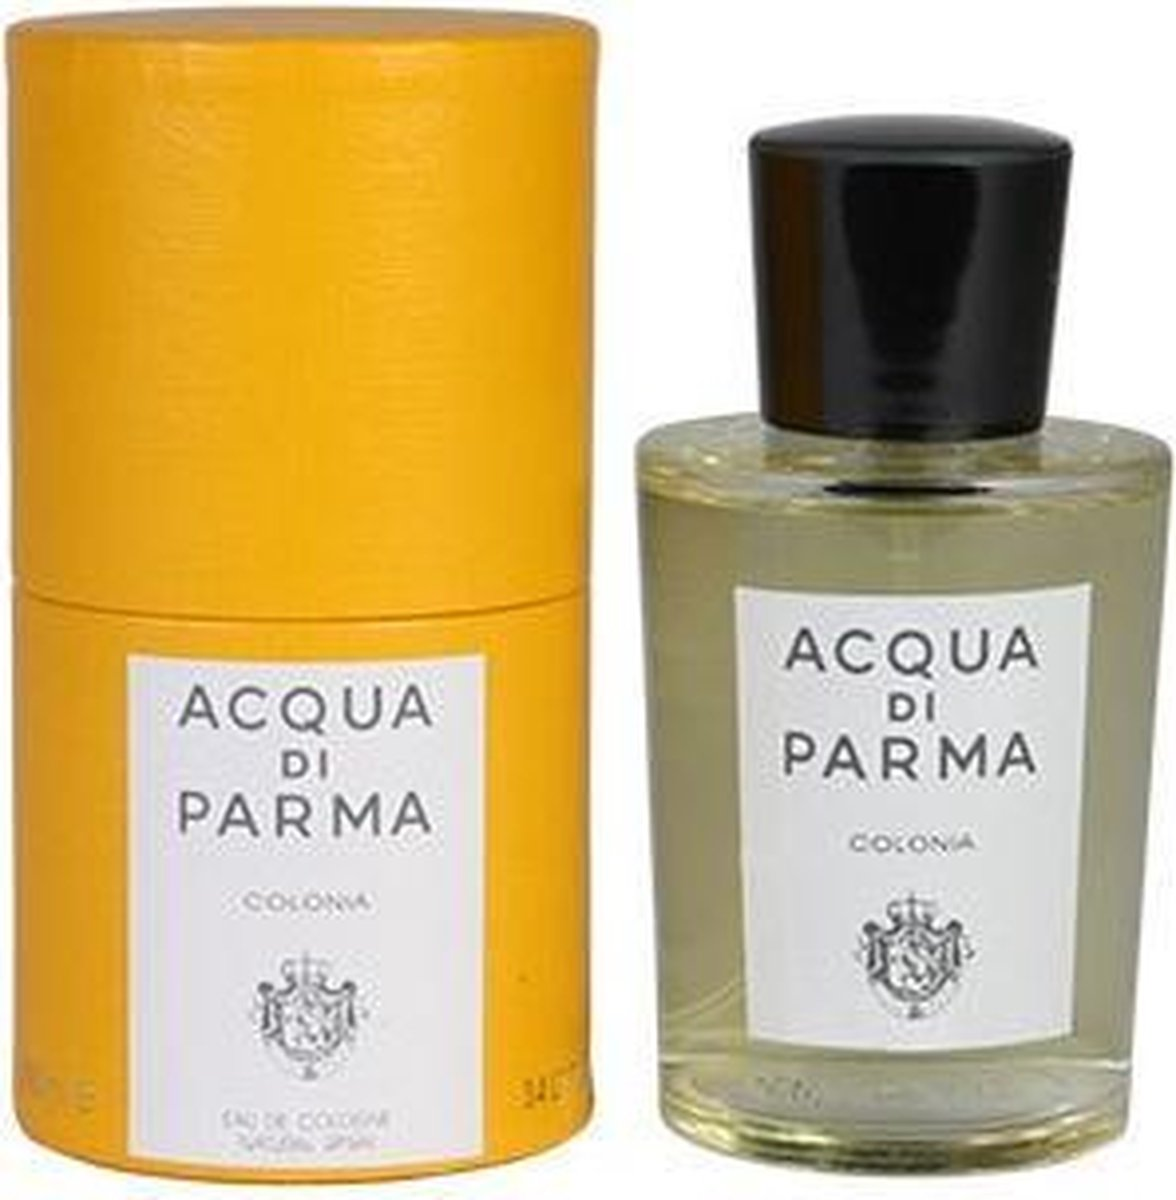 MULTI BUNDEL 2 stuks - Acqua Di Parma - ACQUA DI PARMA - eau de cologne - spray 100 ml